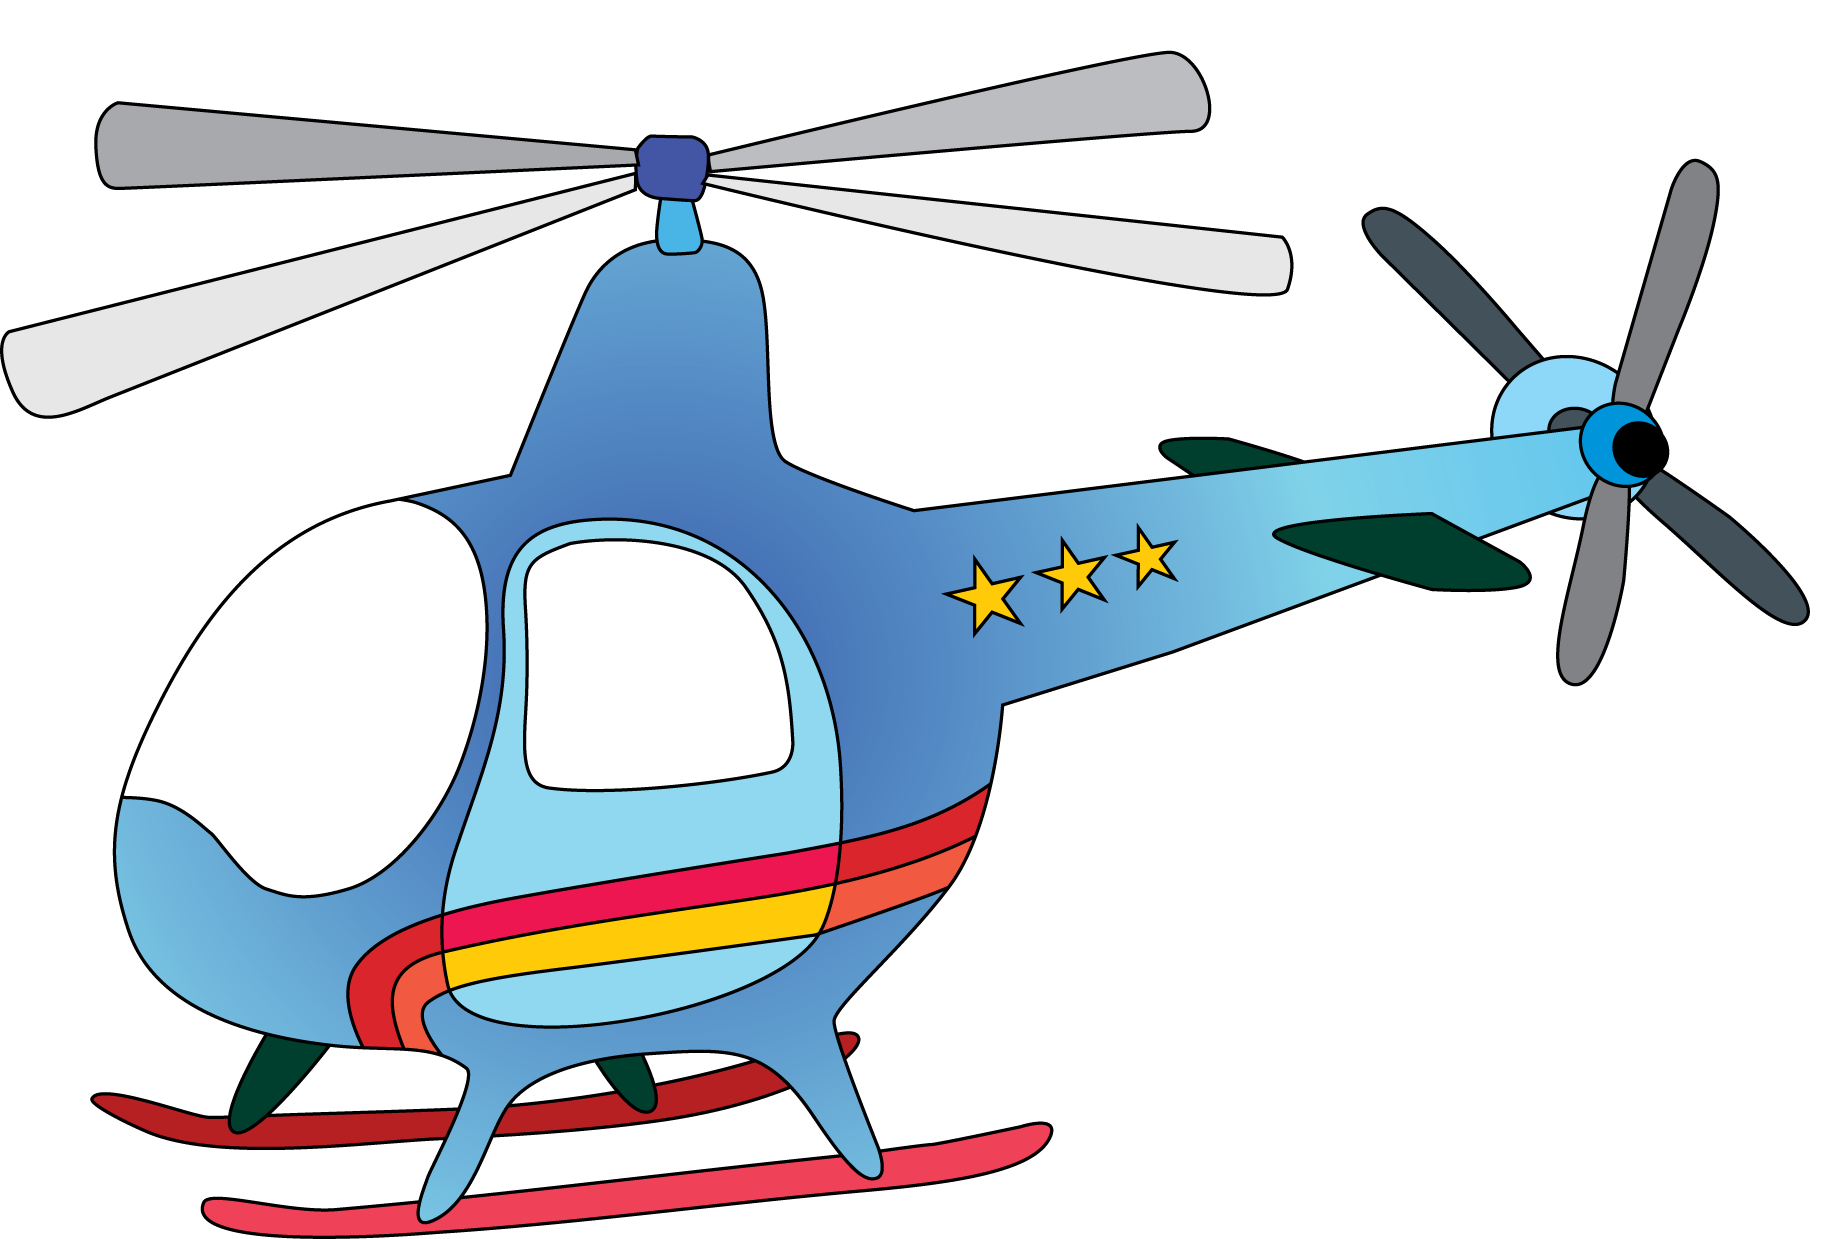 small resolution of cute airplane clip art have about files nov cachedhelicopter clipart images graphics browse